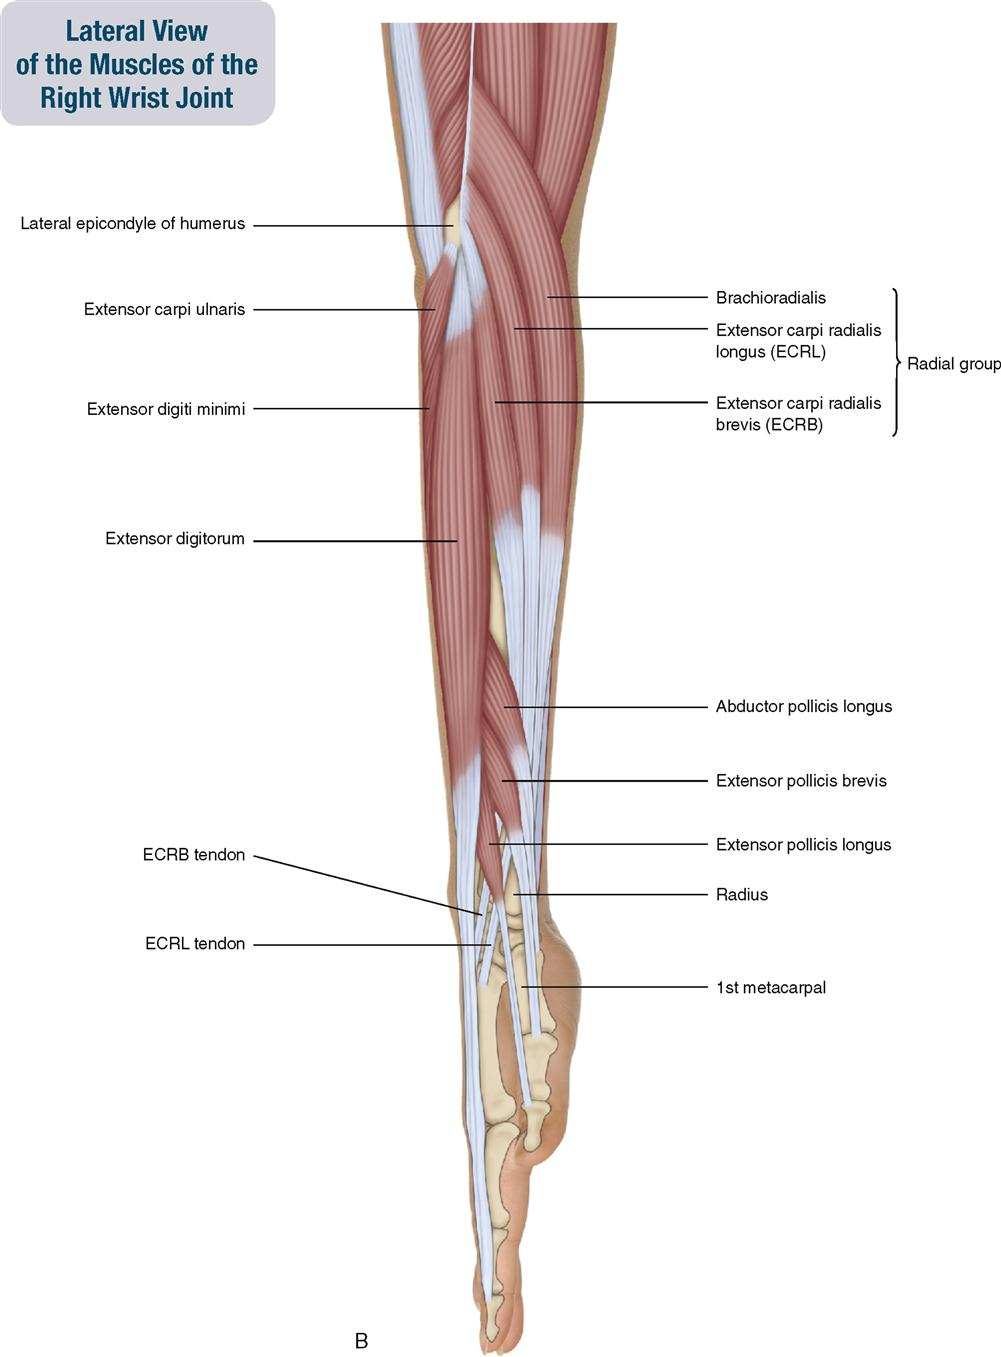 Anatomy of right wrist